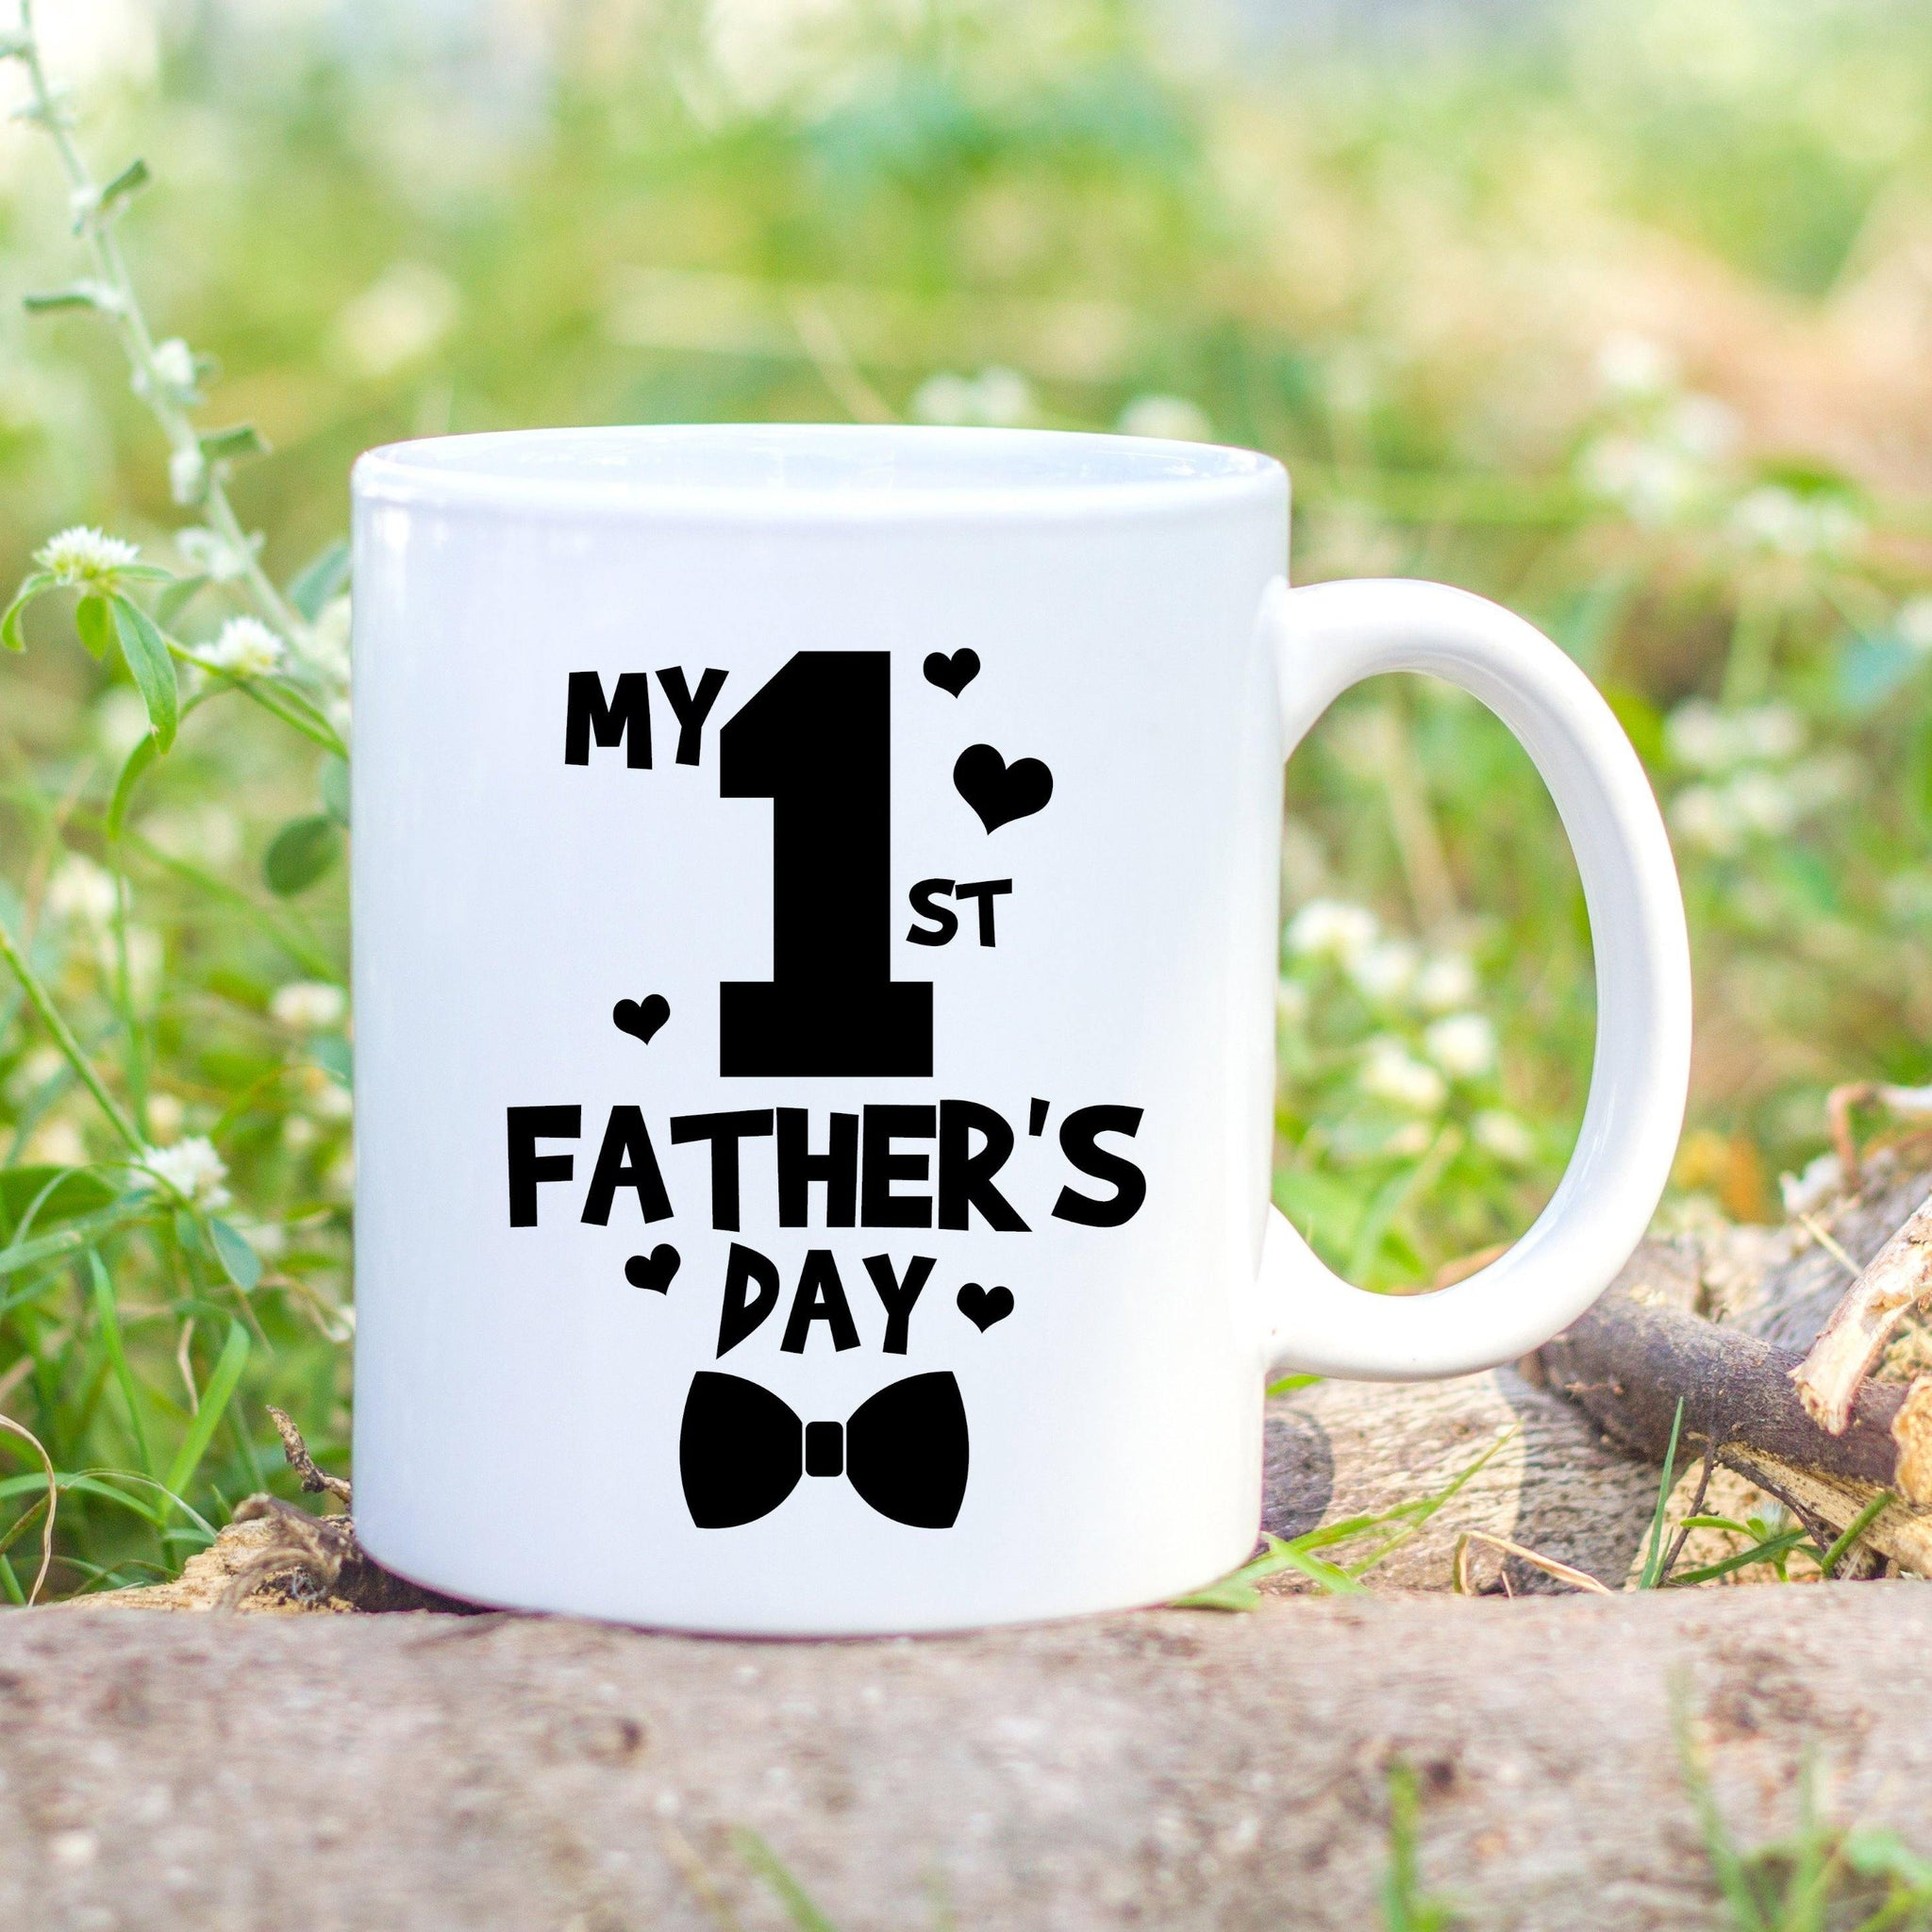 First fathers day mug - Sew Tilley